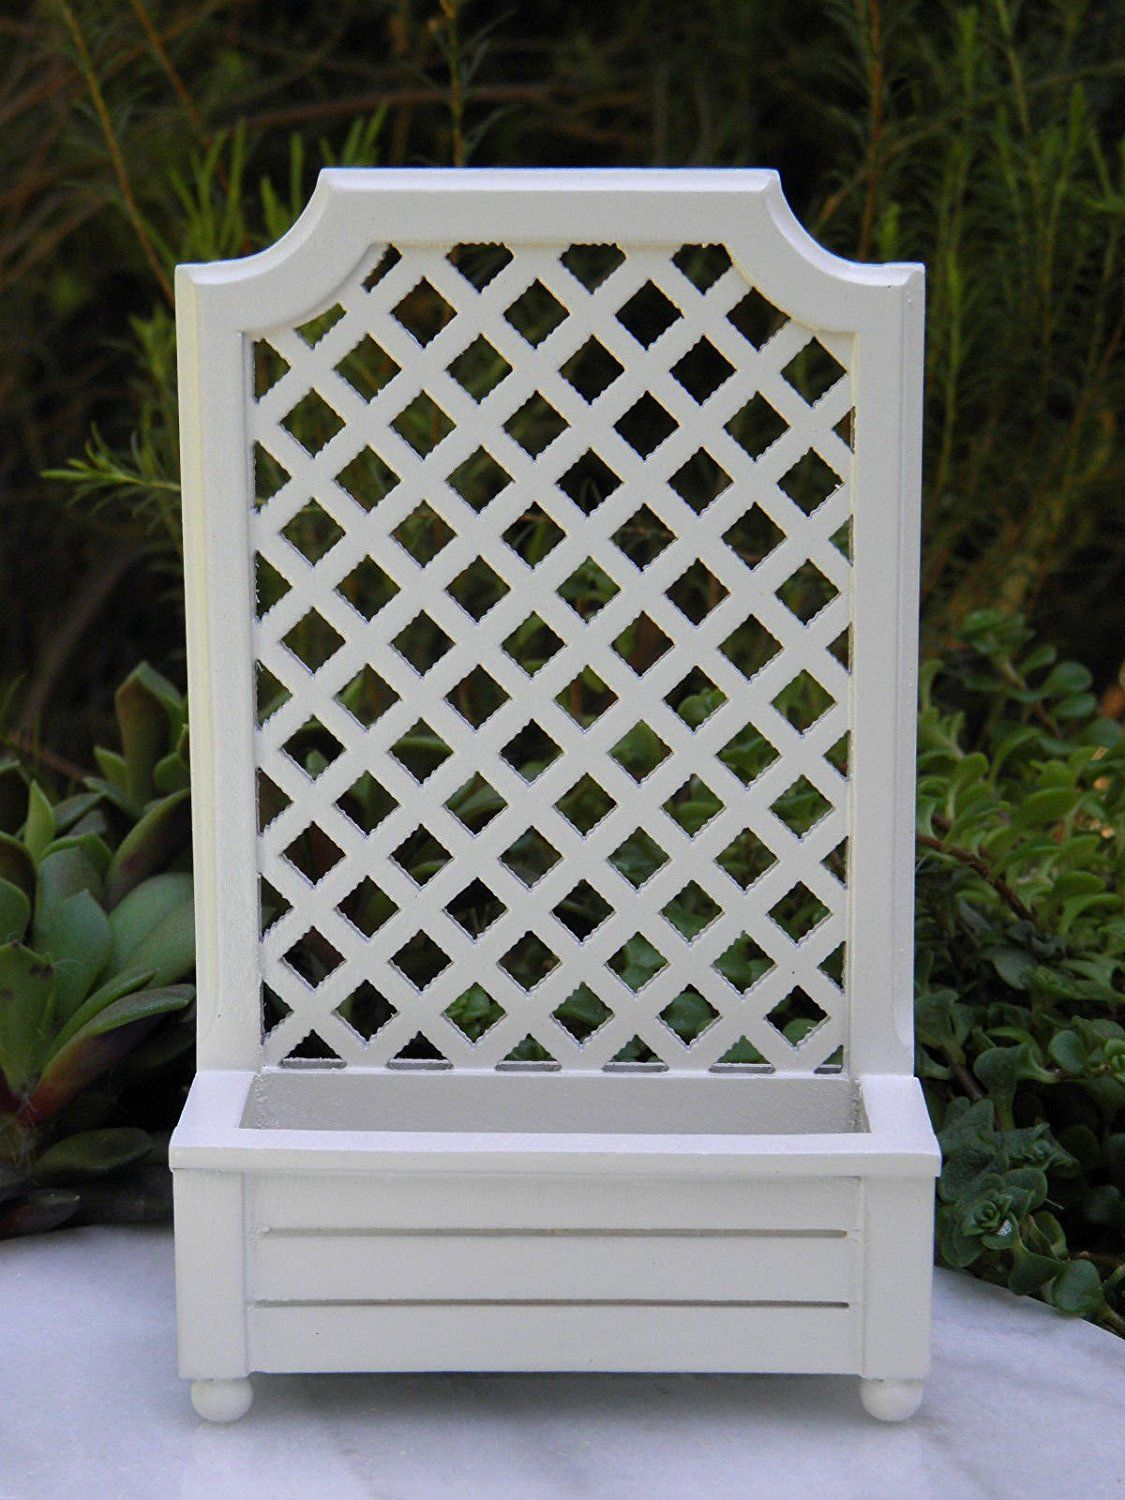 Comfortable Miniature Dollhouse Fairy Garden Accessories Woodtrellis Planter Box Sports Miniature Dollhouse Fairy Garden Accessories Wood Fairy Garden Planter Boxes